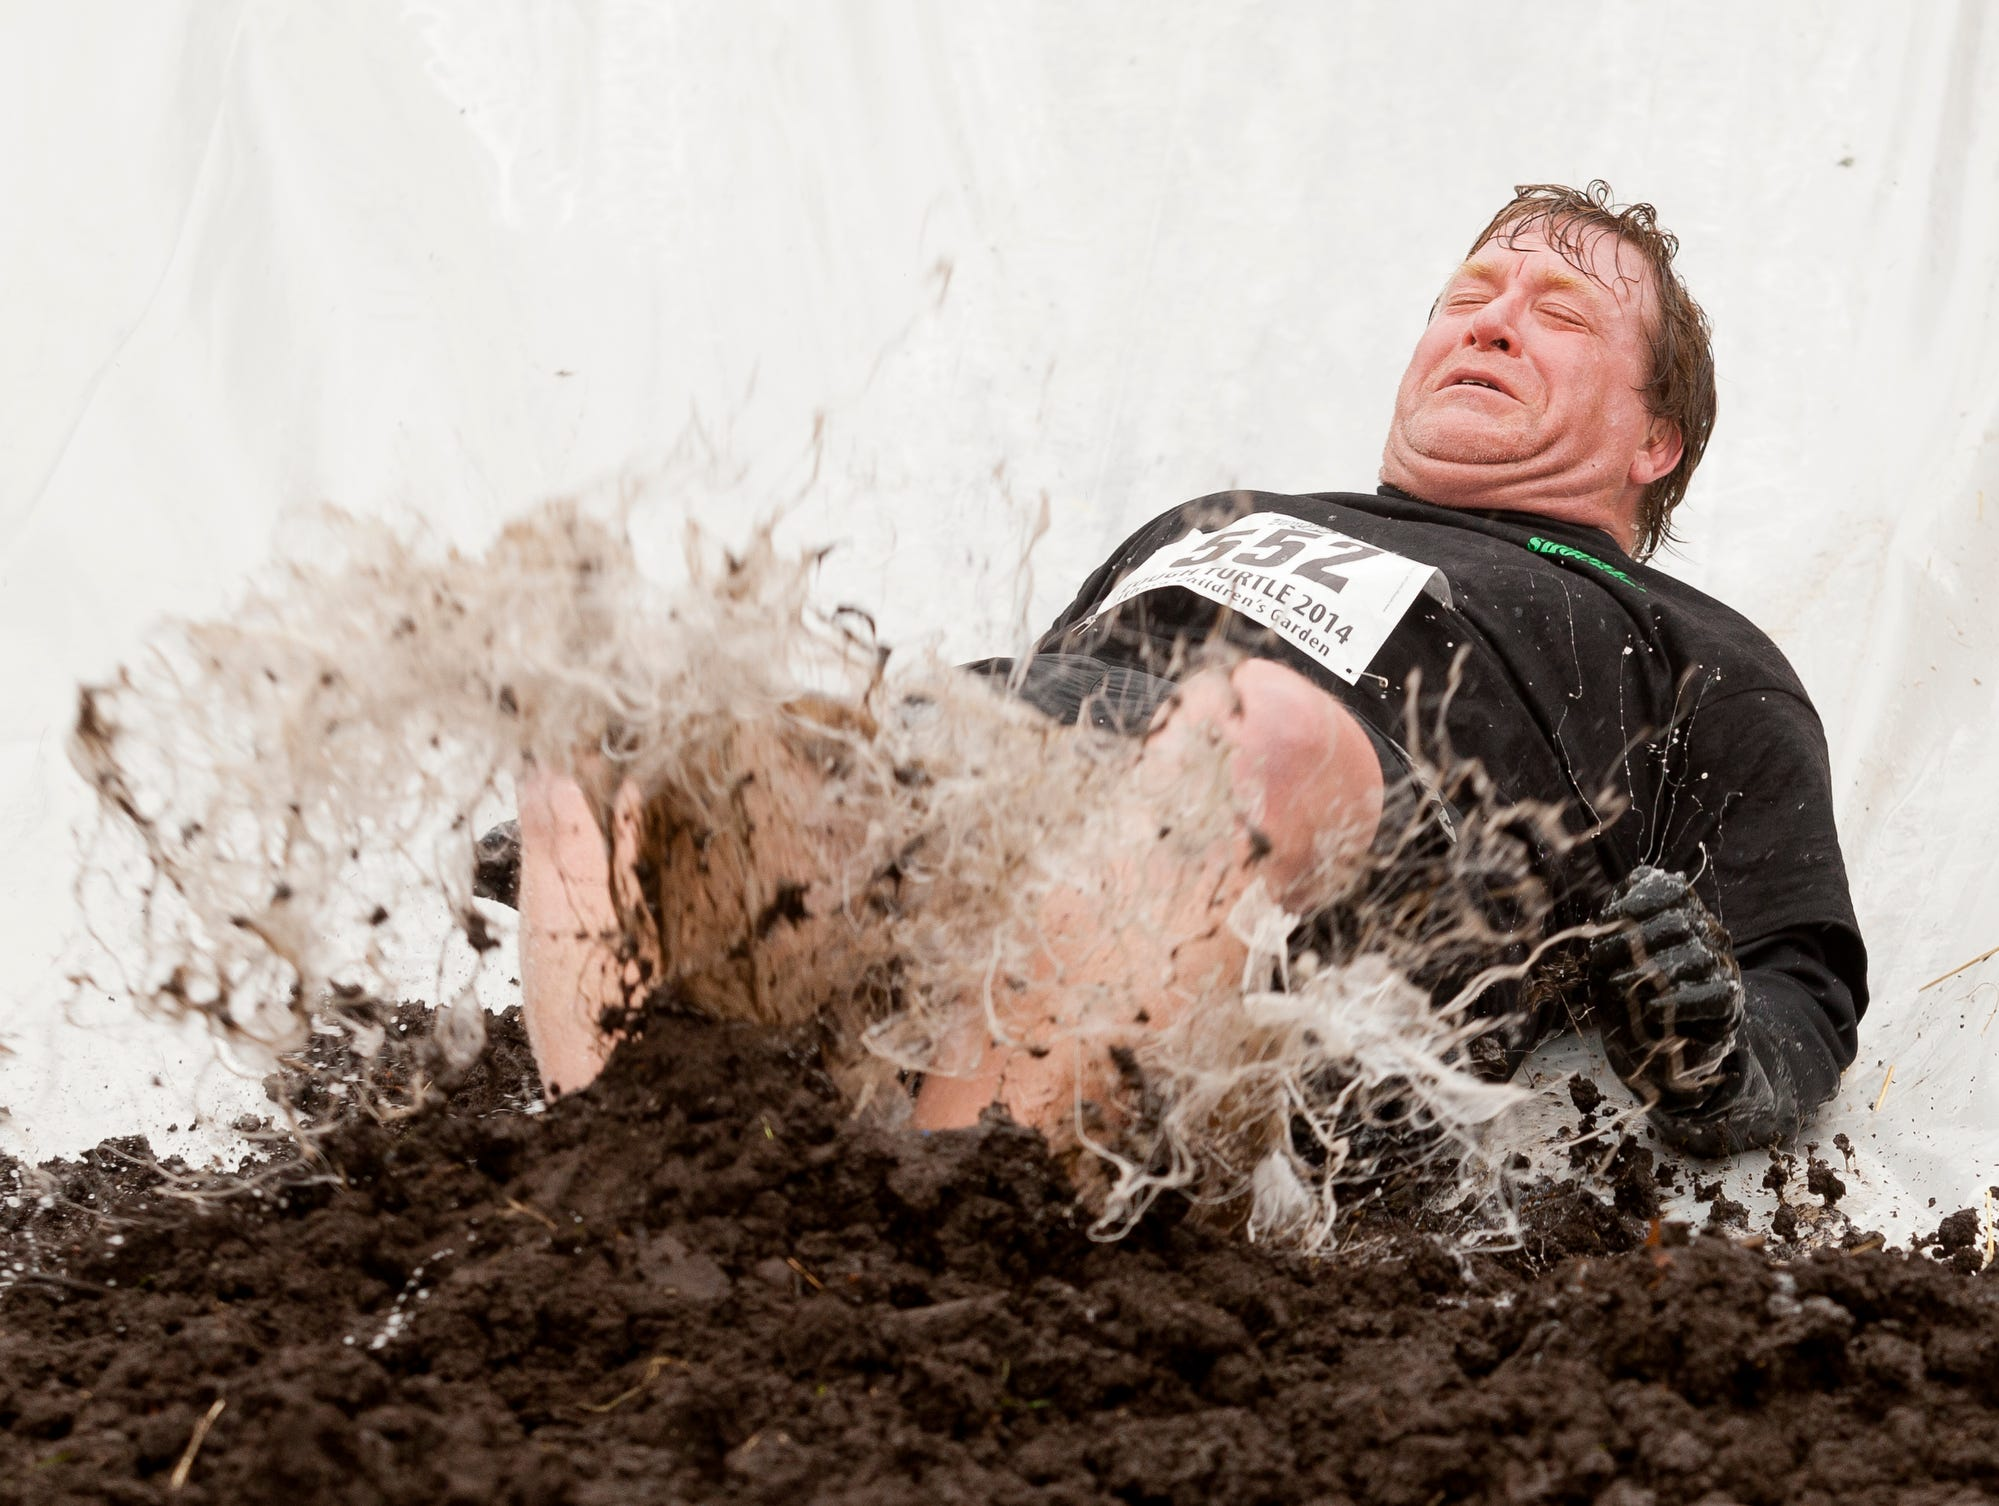 2014: Marvin Oltz of Ithaca hits the compost at the bottom of the plastic slide during the annual Tough Turtle event held in April to benefit the Children's Garden.